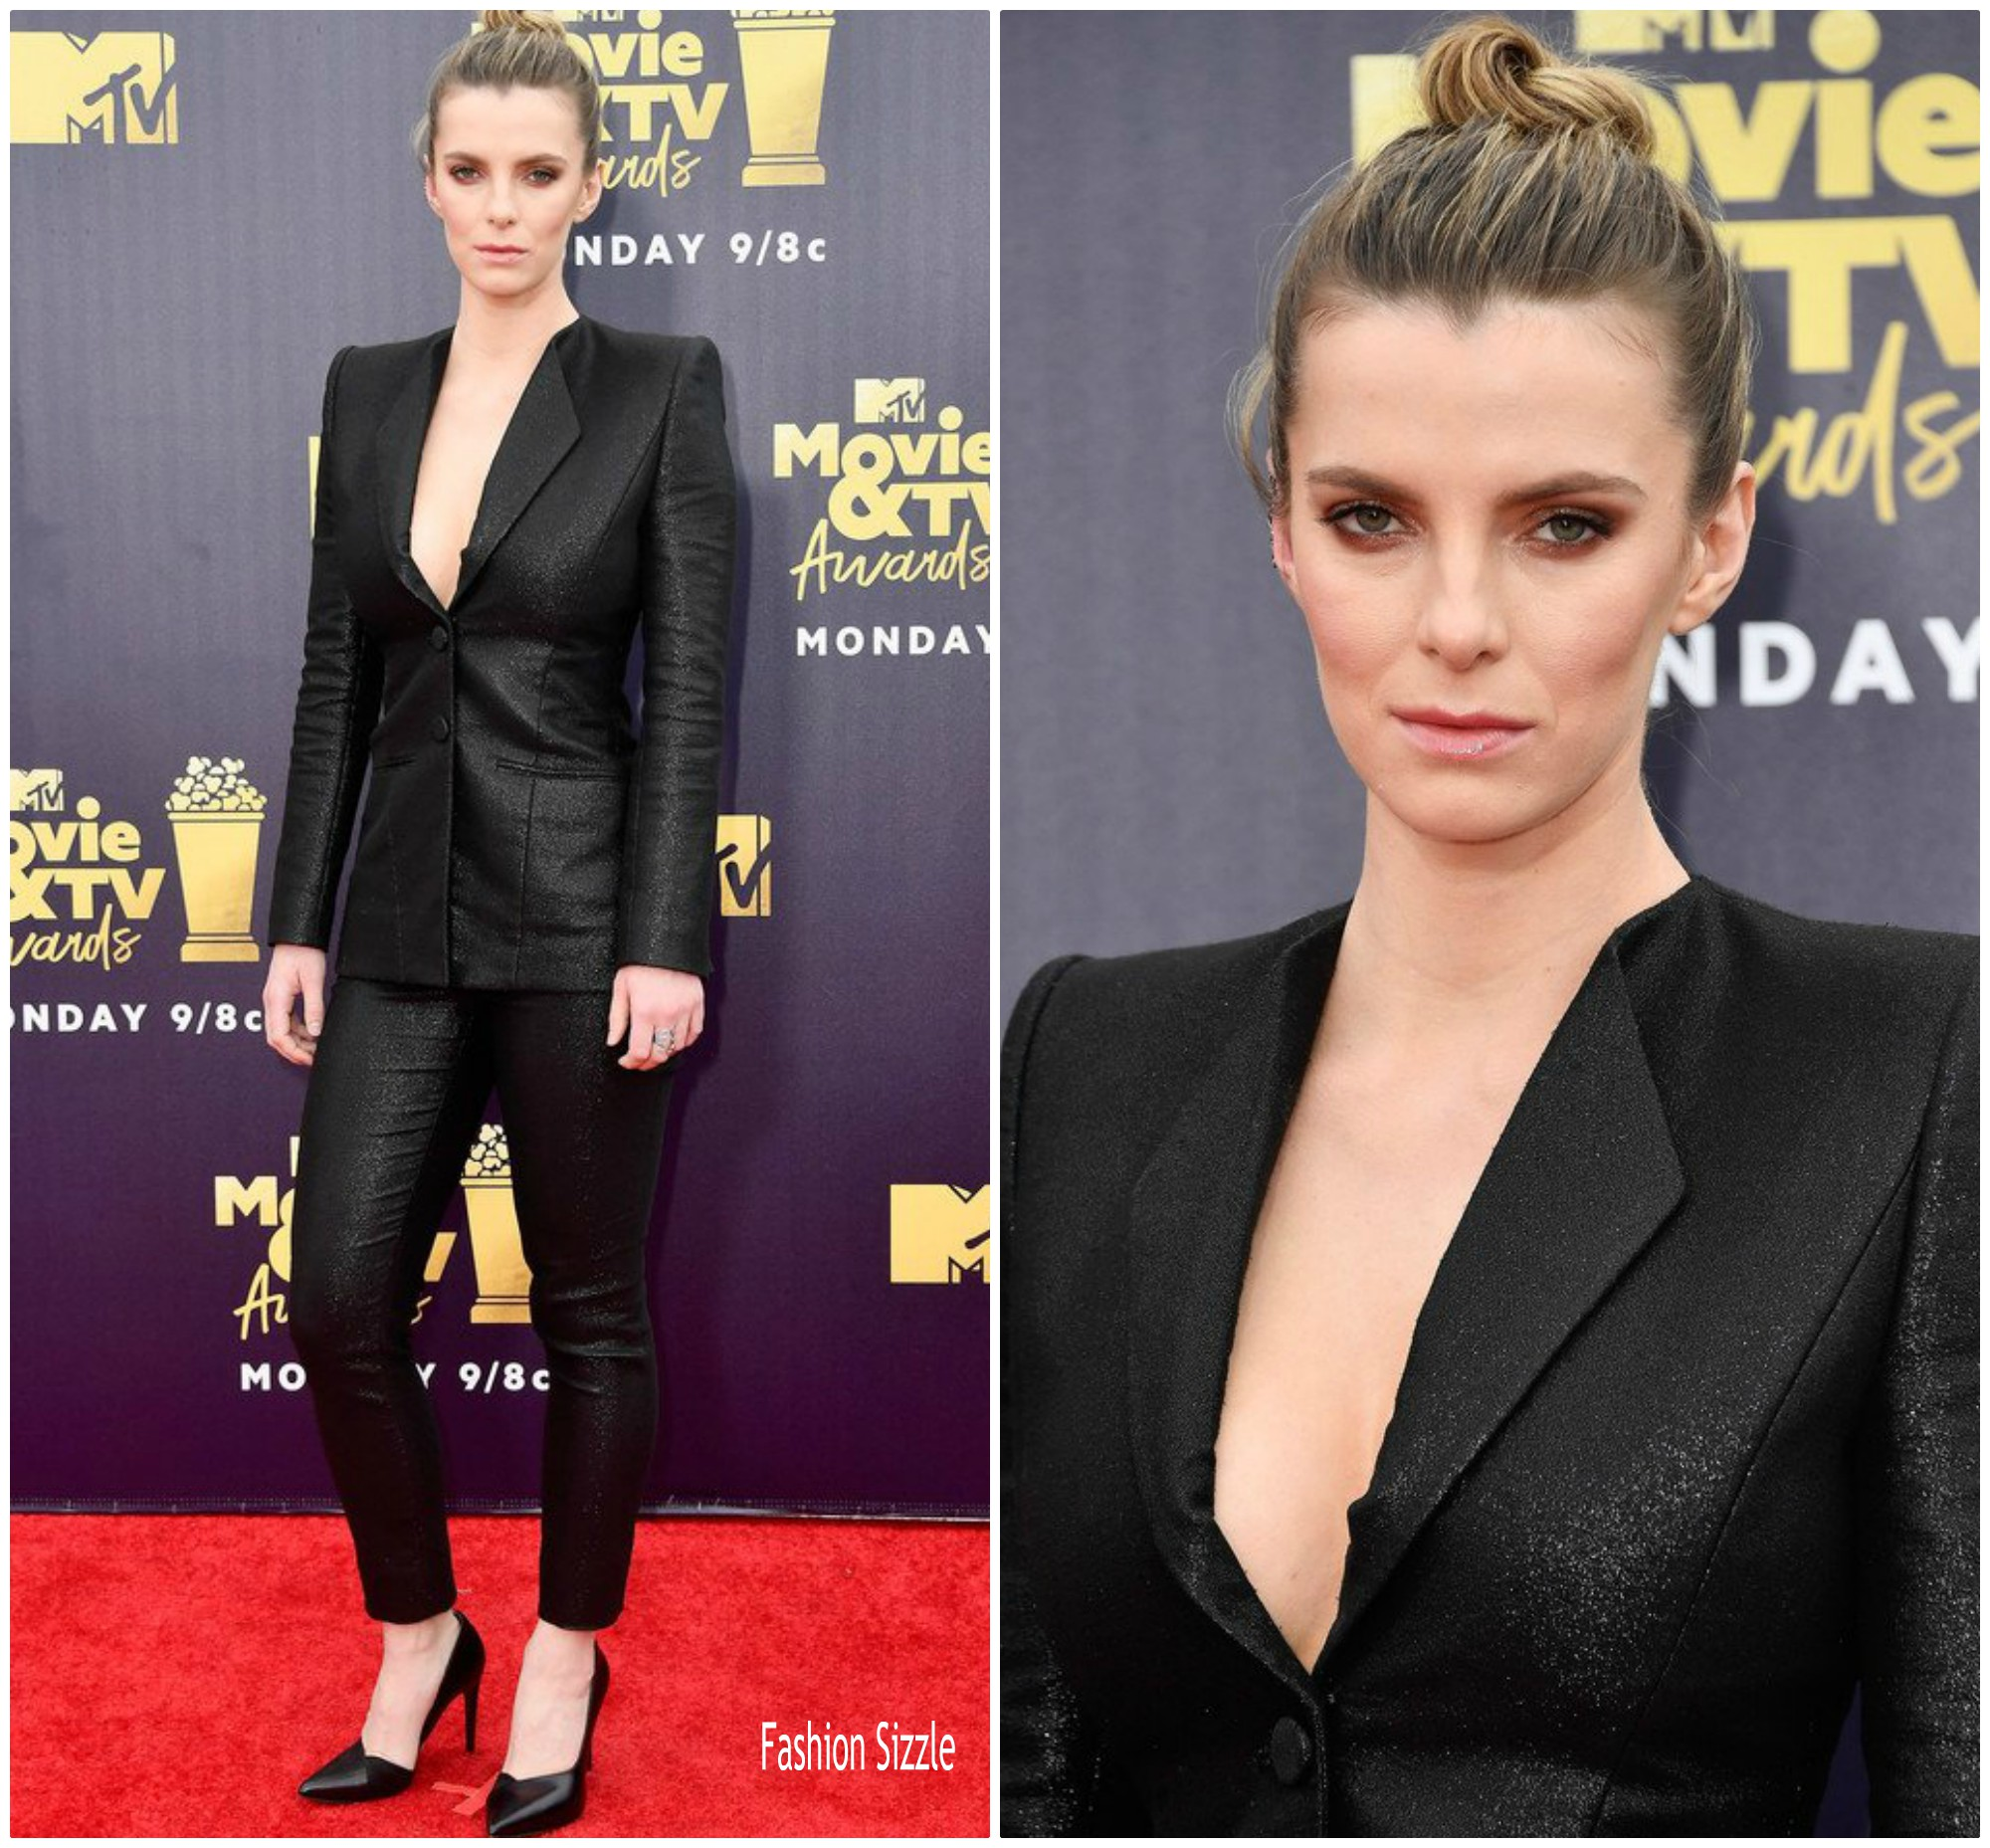 betty-gilpin-in-zac-posen-2018-mtv-movie-tv-awards